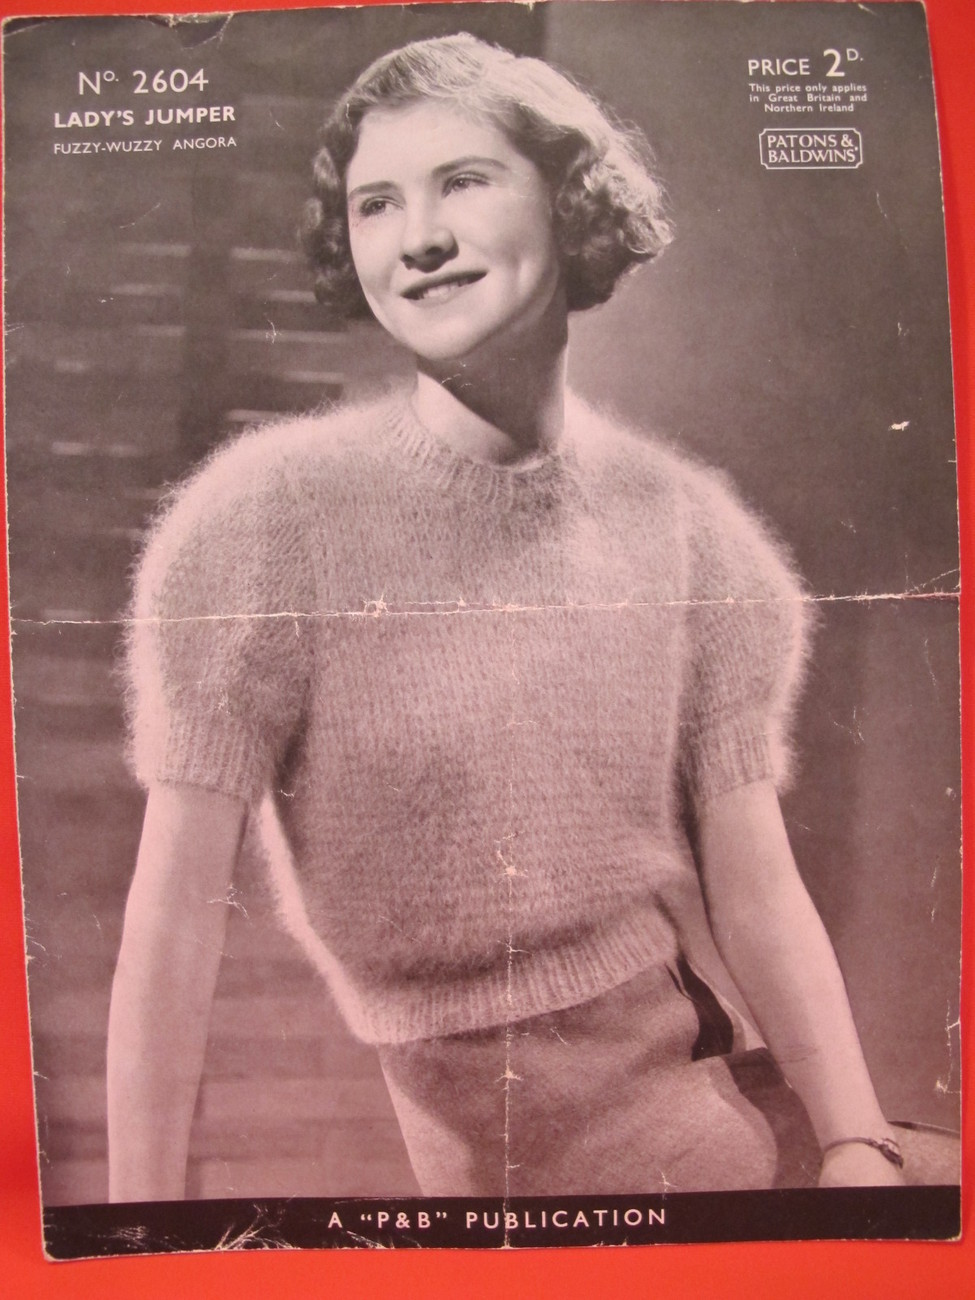 Vintage Fuzzy Wuzzy Angora Knitting Patterns LADYS Jumper Sweater